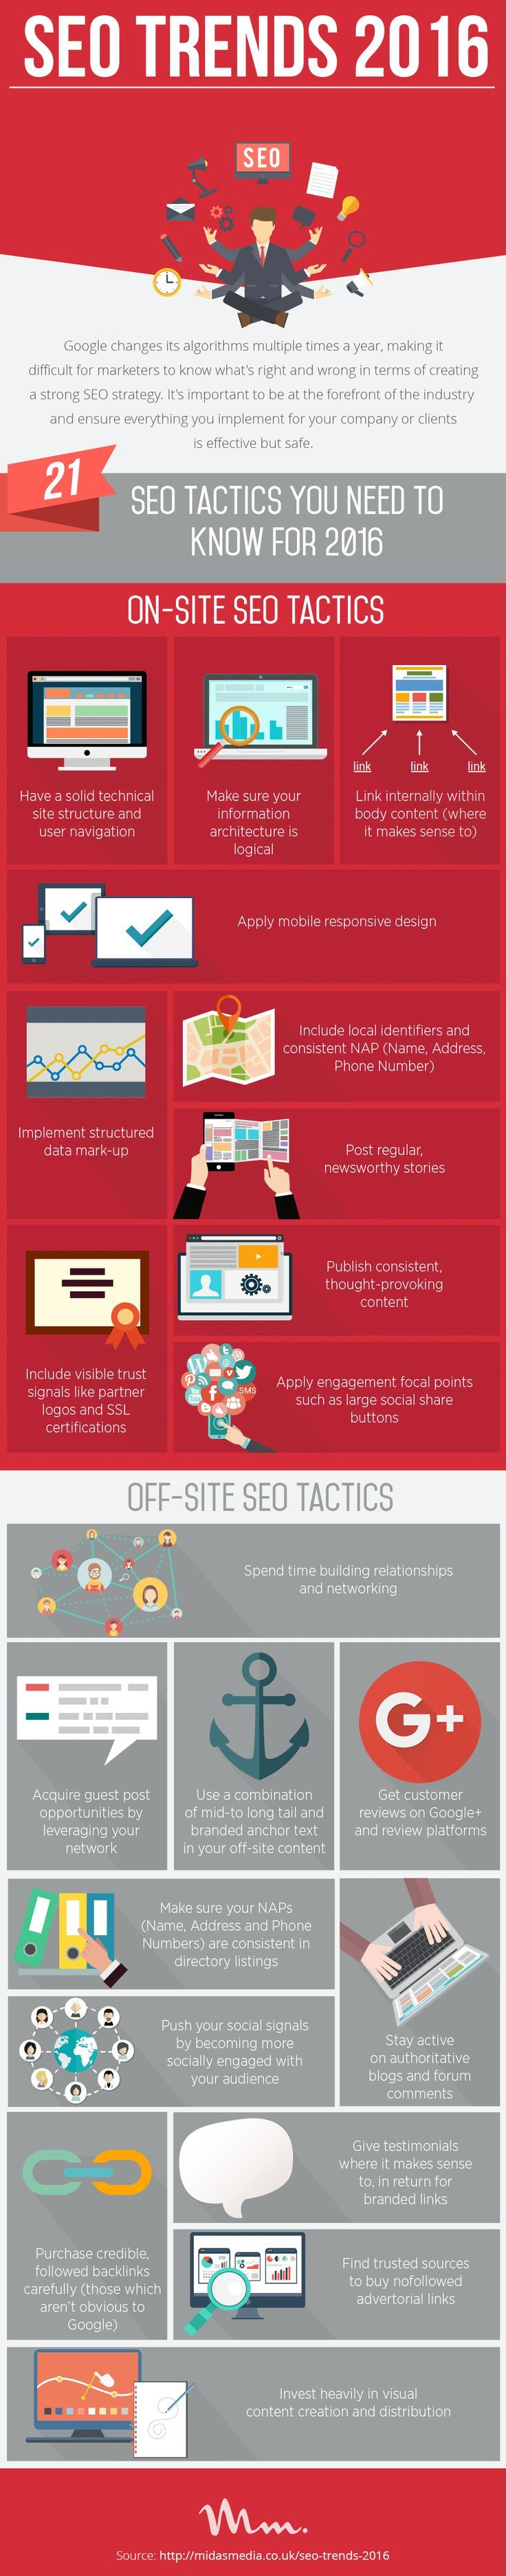 #Google changes its algorithm multiple times a year so it can get fairly confusing as to what #SEO tactics you need to employ or avoid. Here's the latest for 2016!